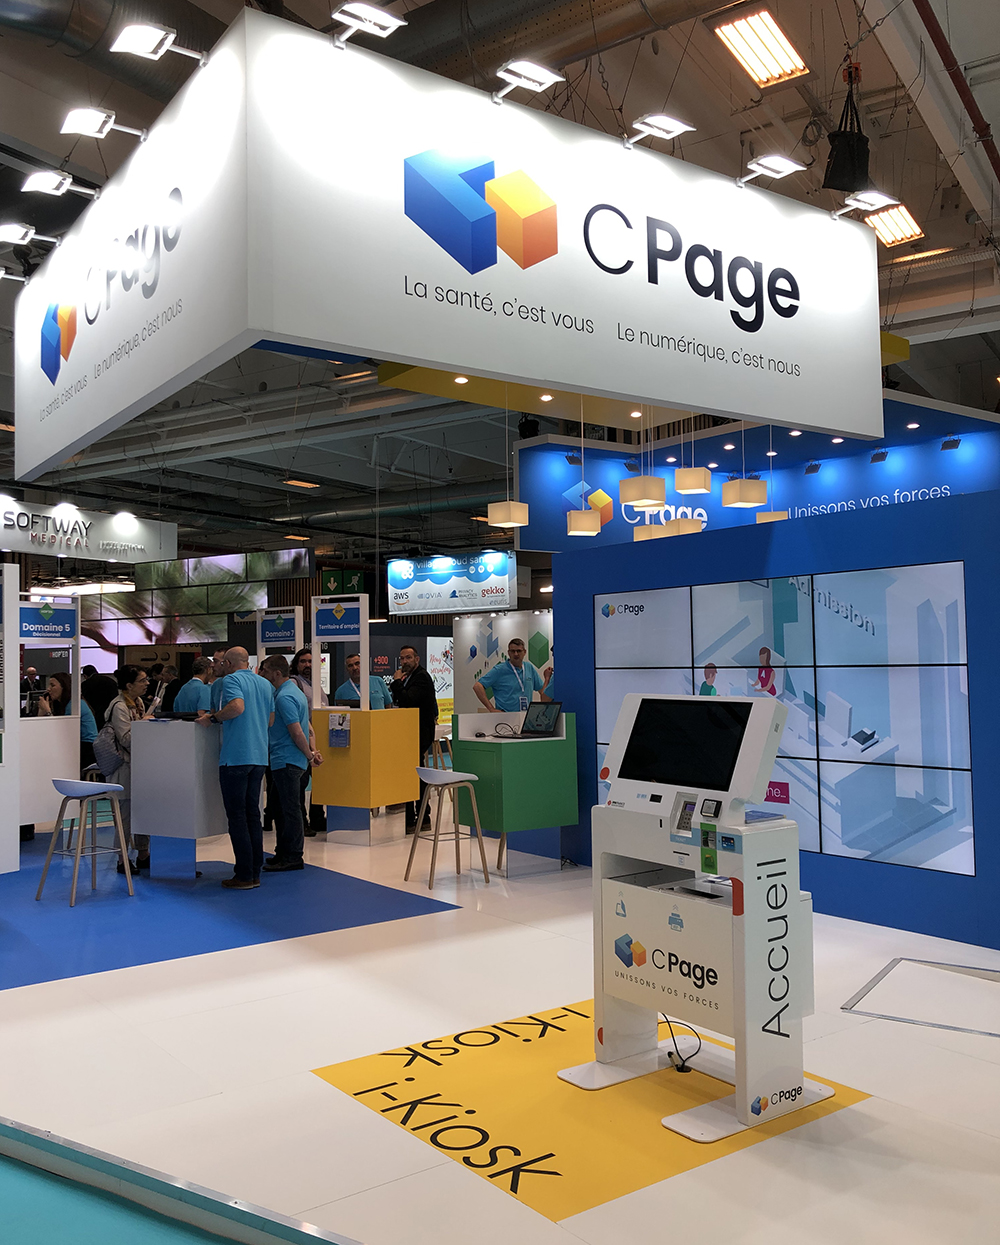 admission kiosk-CPage-HIT trade show 2019